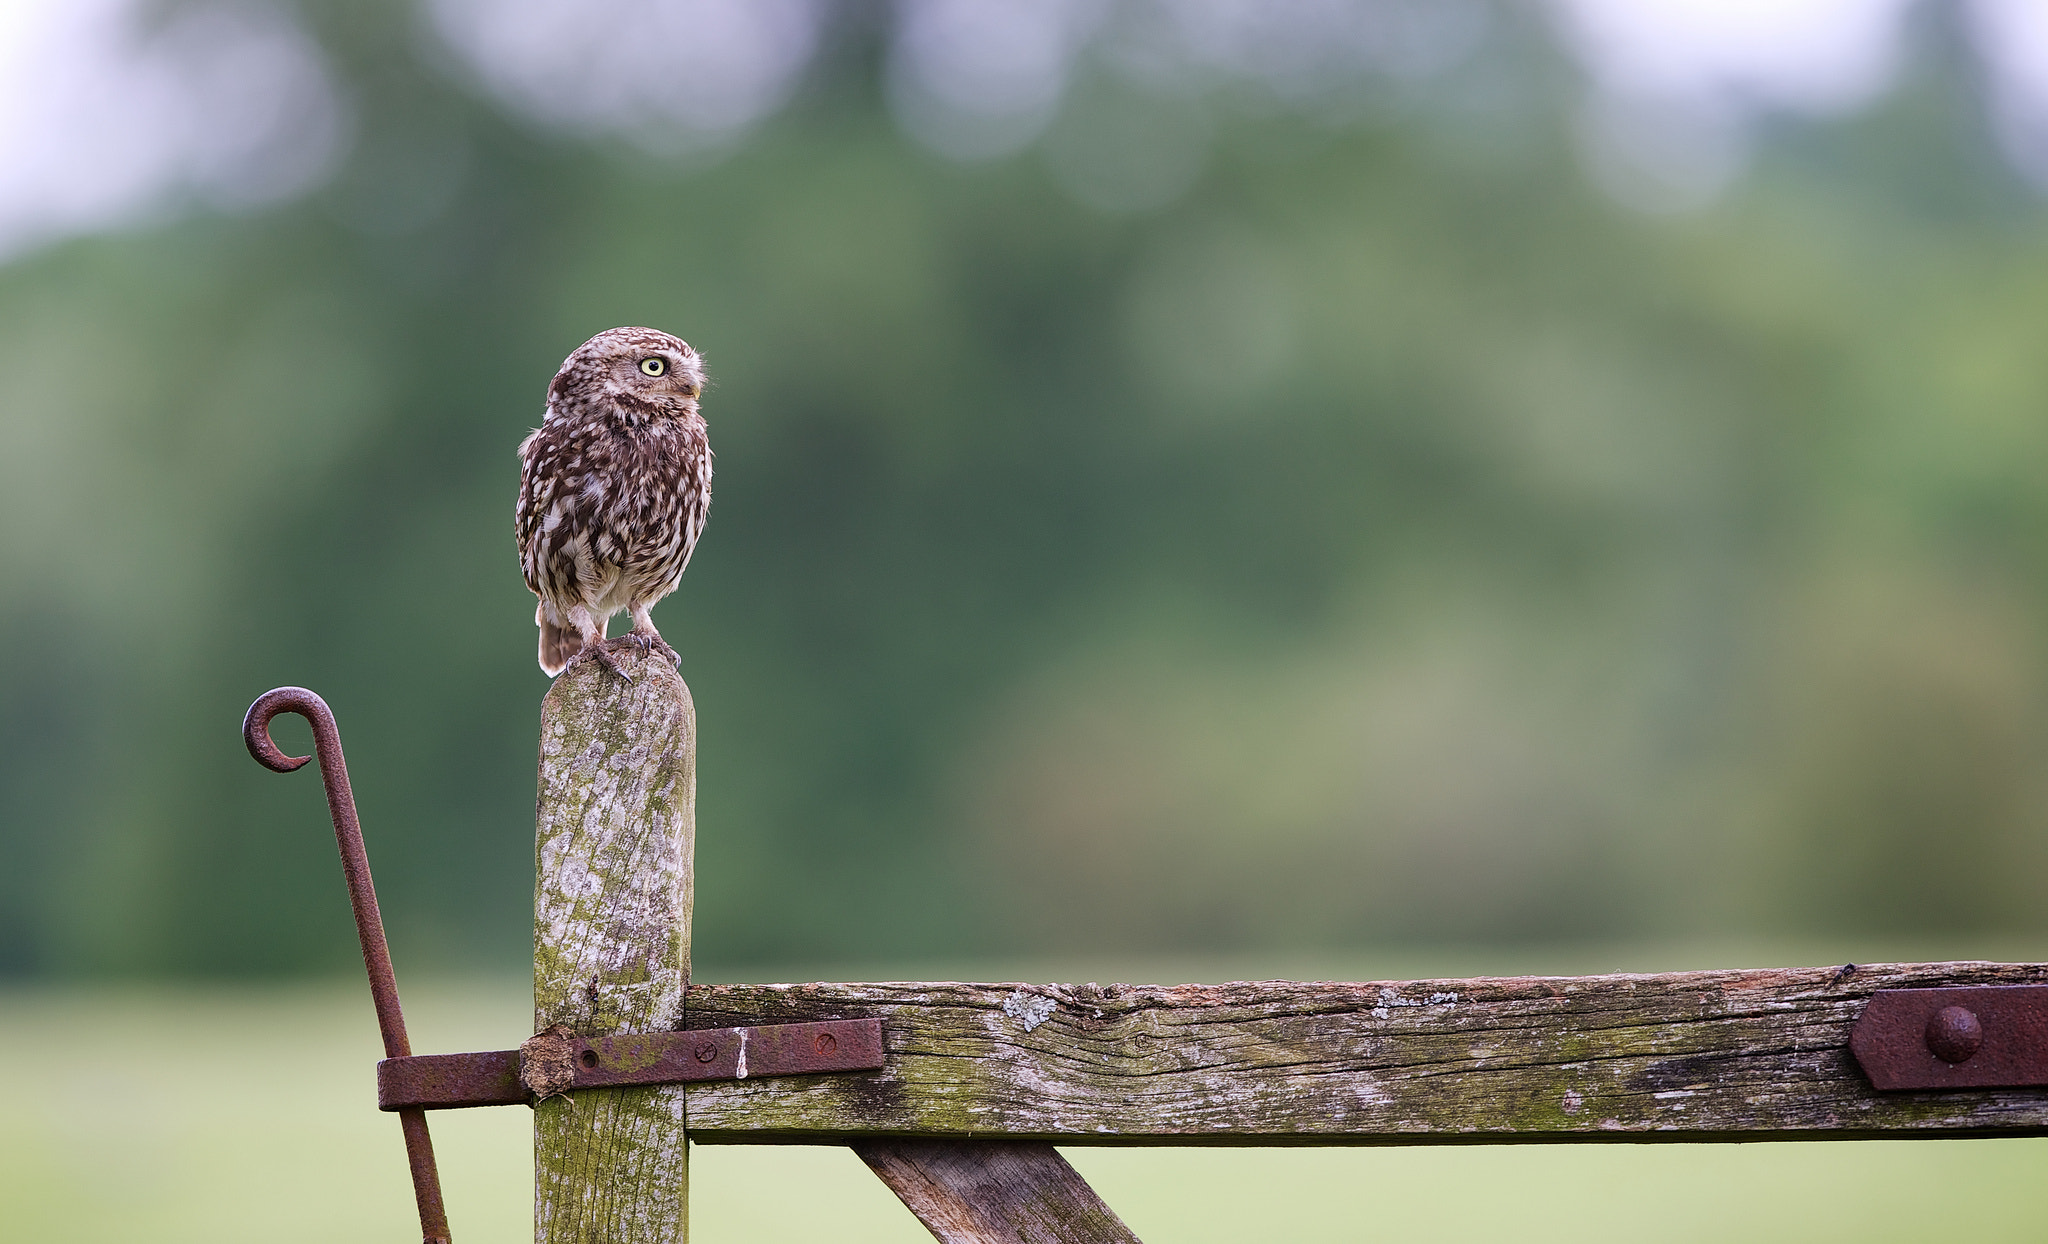 Photograph sitting on the fence by Mark Bridger on 500px